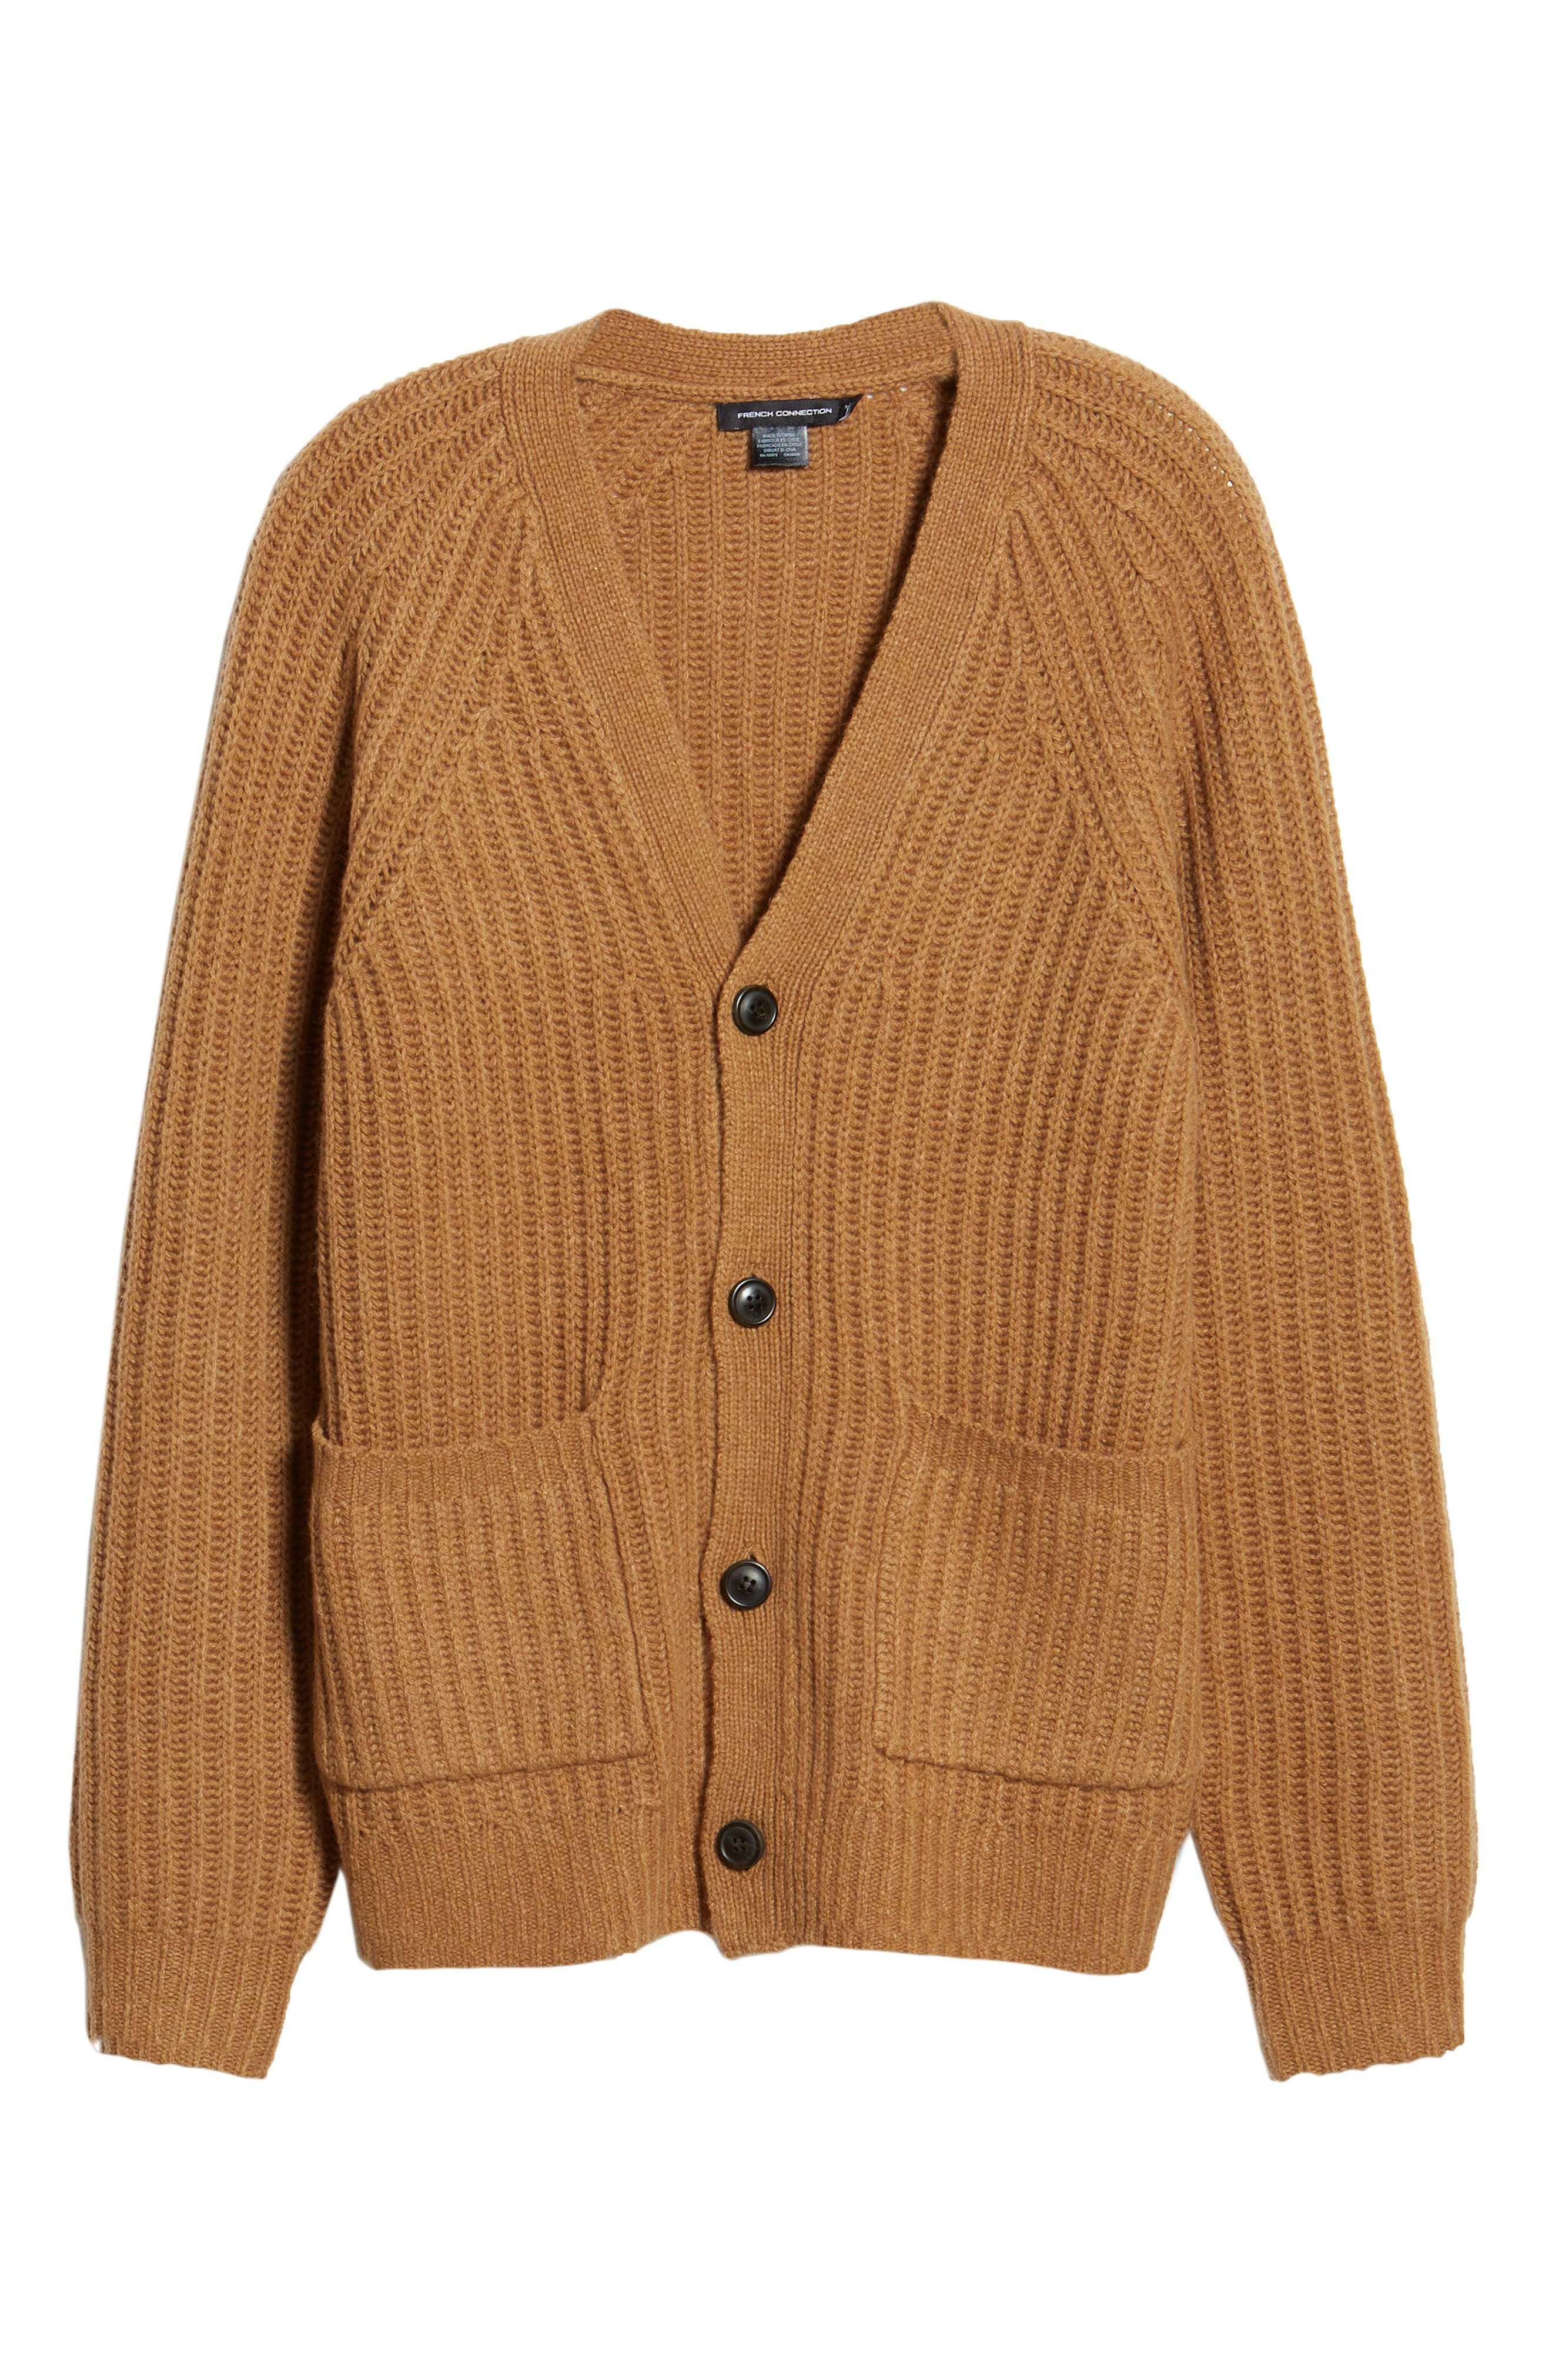 Supersoft Wool Blend Cardigan,                             Alternate thumbnail 6, color,                             RICH CAMEL